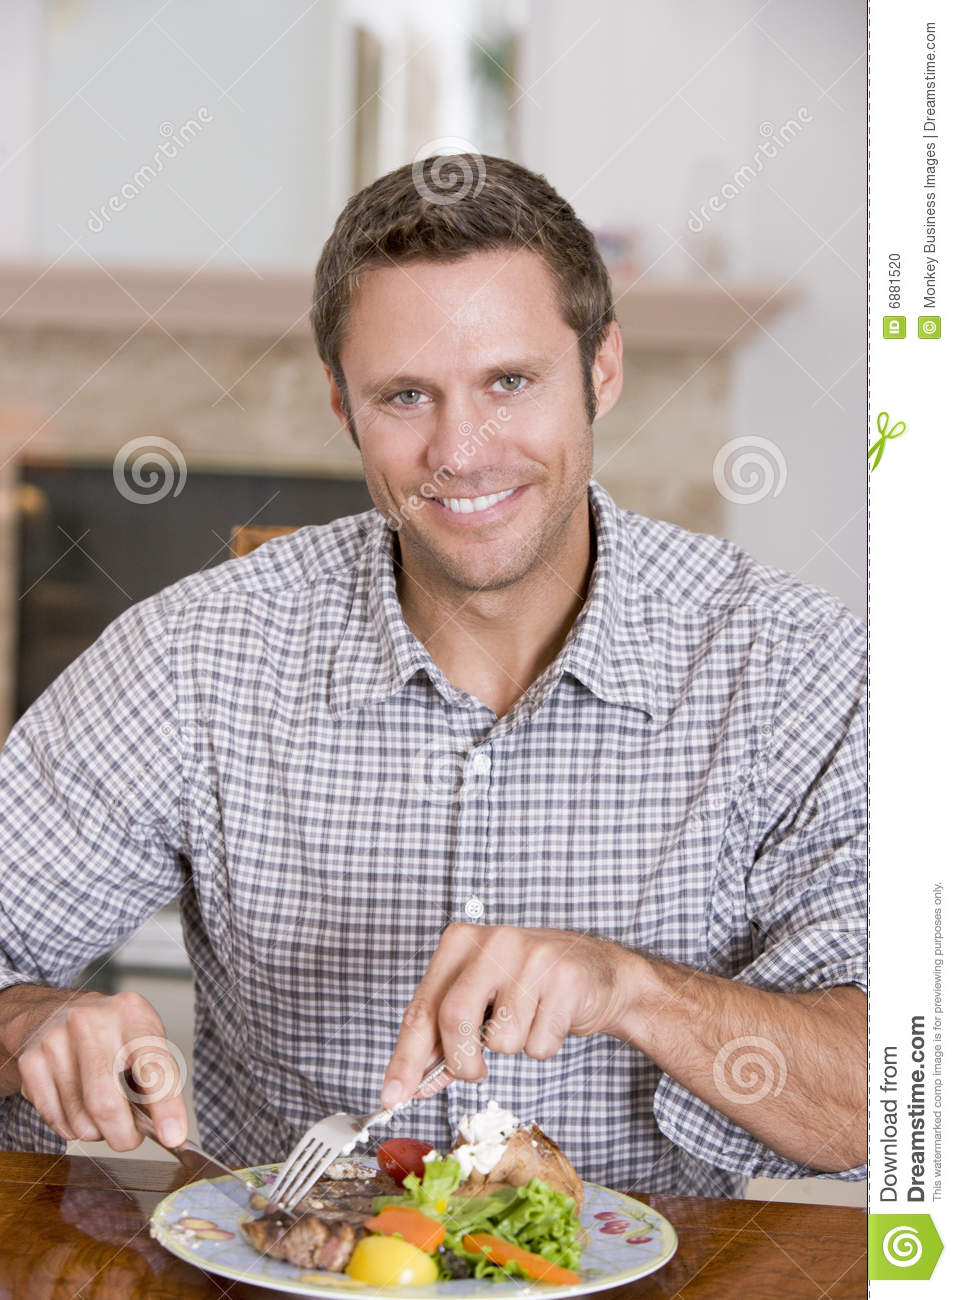 Man Eating Healthy Meal Mealtime Together Stock Photo